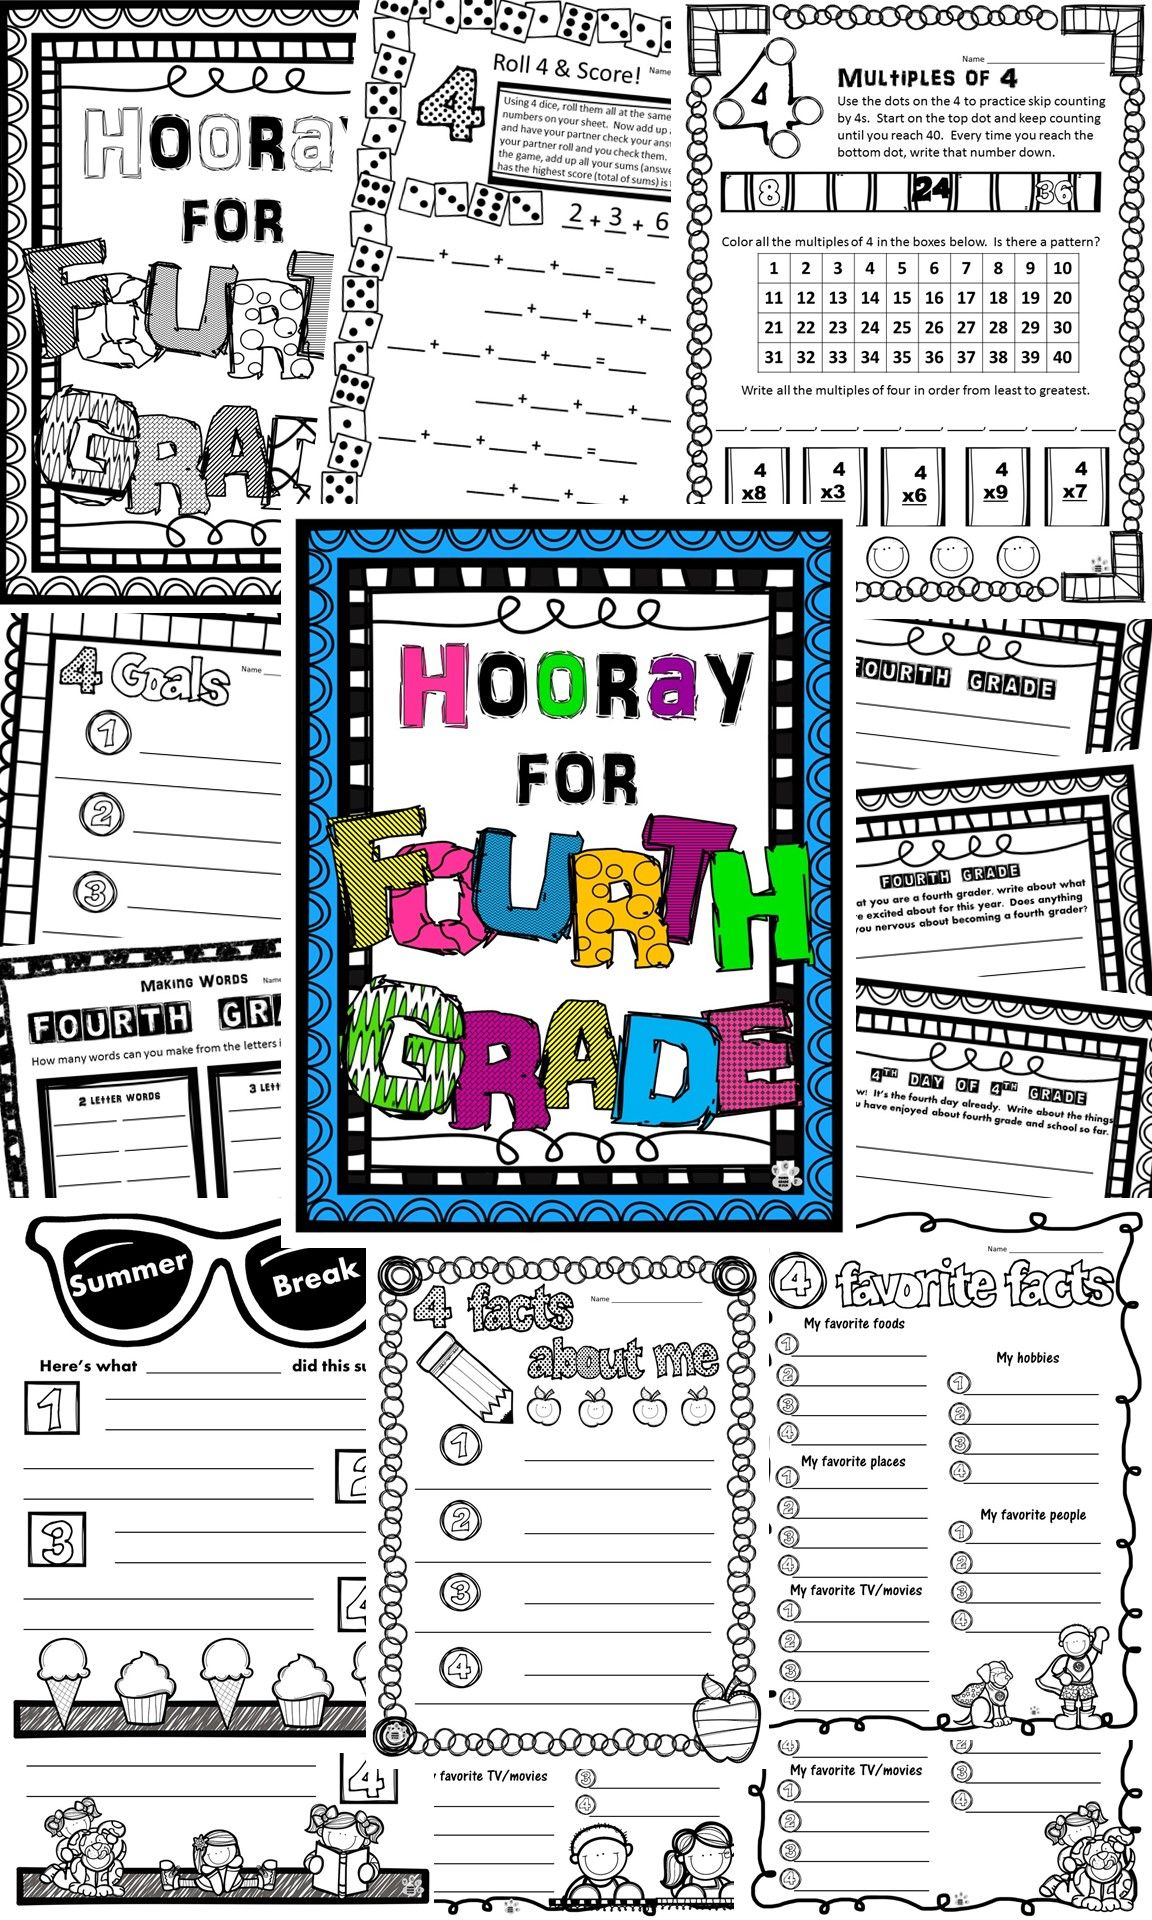 Back To School Fourth Grade First Week Day 4 Activities La Math Writing